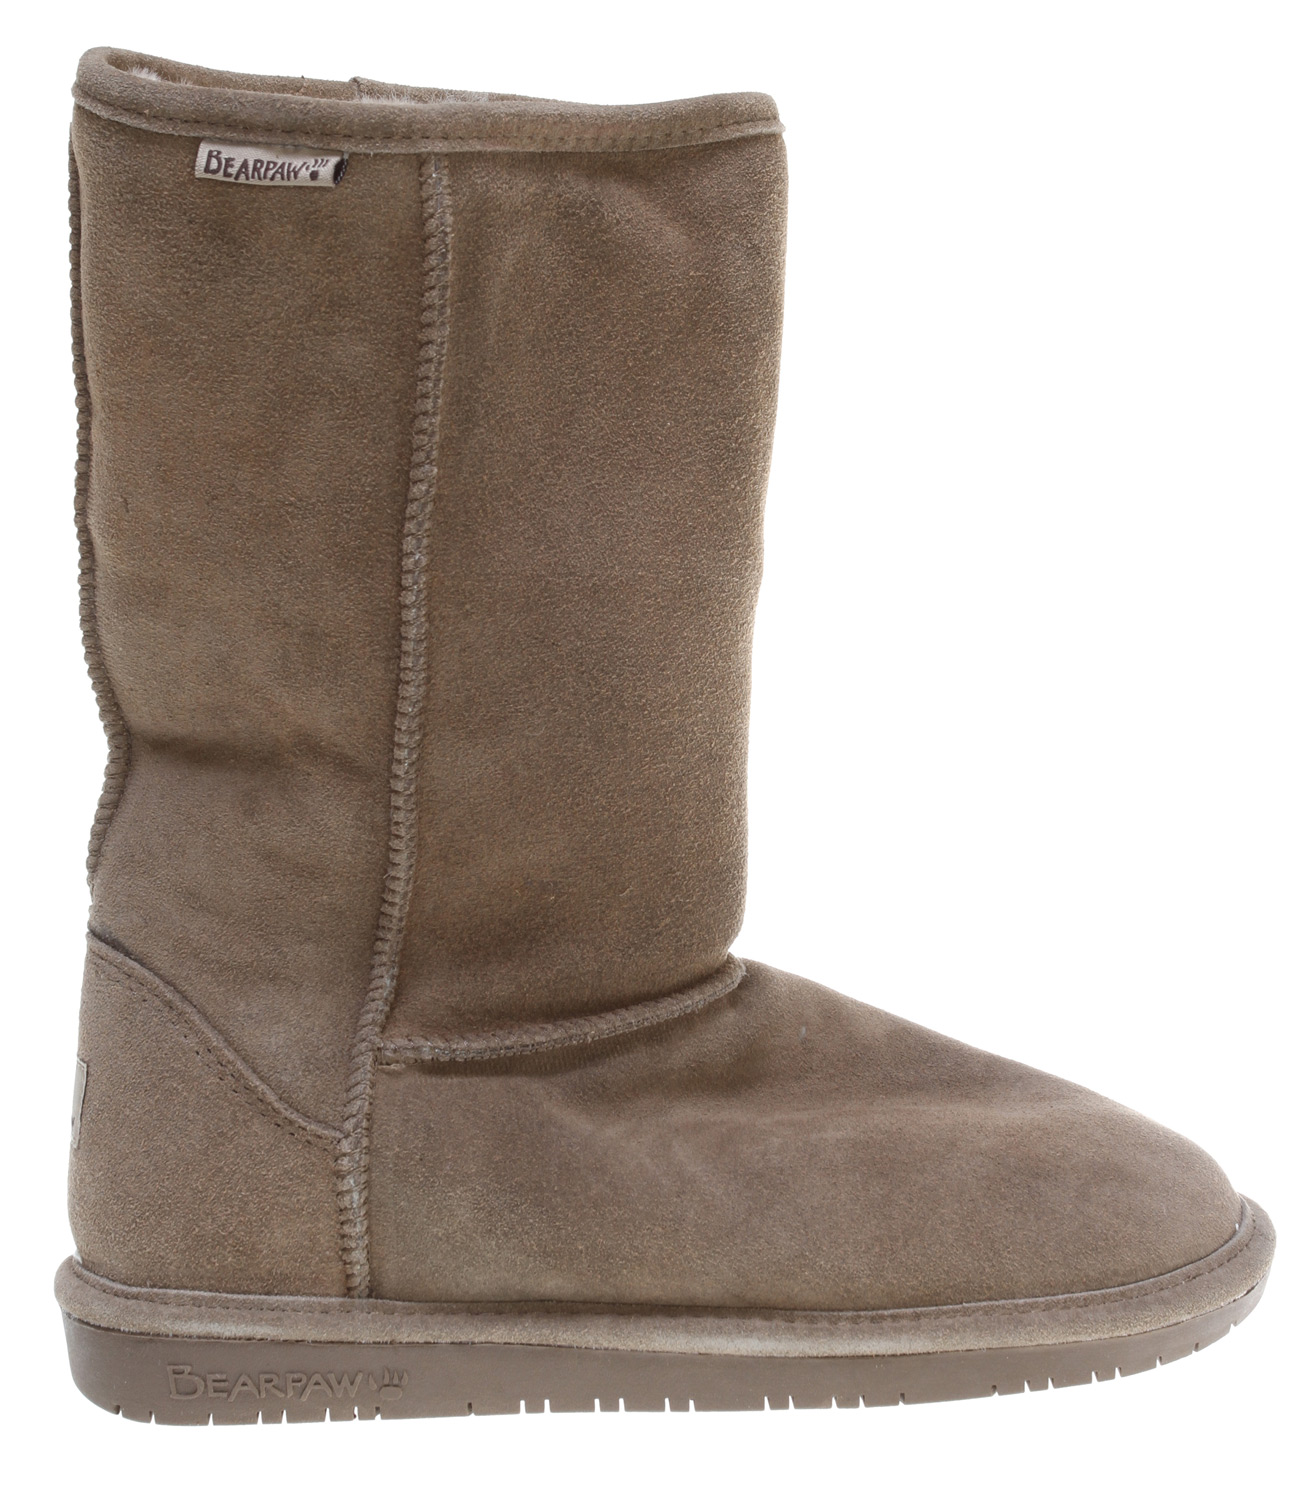 "Key Features of the : Key Features of the Bearpaw Emma 10 Inch Casual Boots: 10"" Cow suede Sheepskin and wool blend lining Sheepskin footbed Woven label heel logo and collar logoKey Features of the Bearpaw Emma 10 Inch Casual Boots: 10"" Cow suede Sheepskin and wool blend lining Sheepskin footbed Woven label heel logo and collar logo - $43.95"